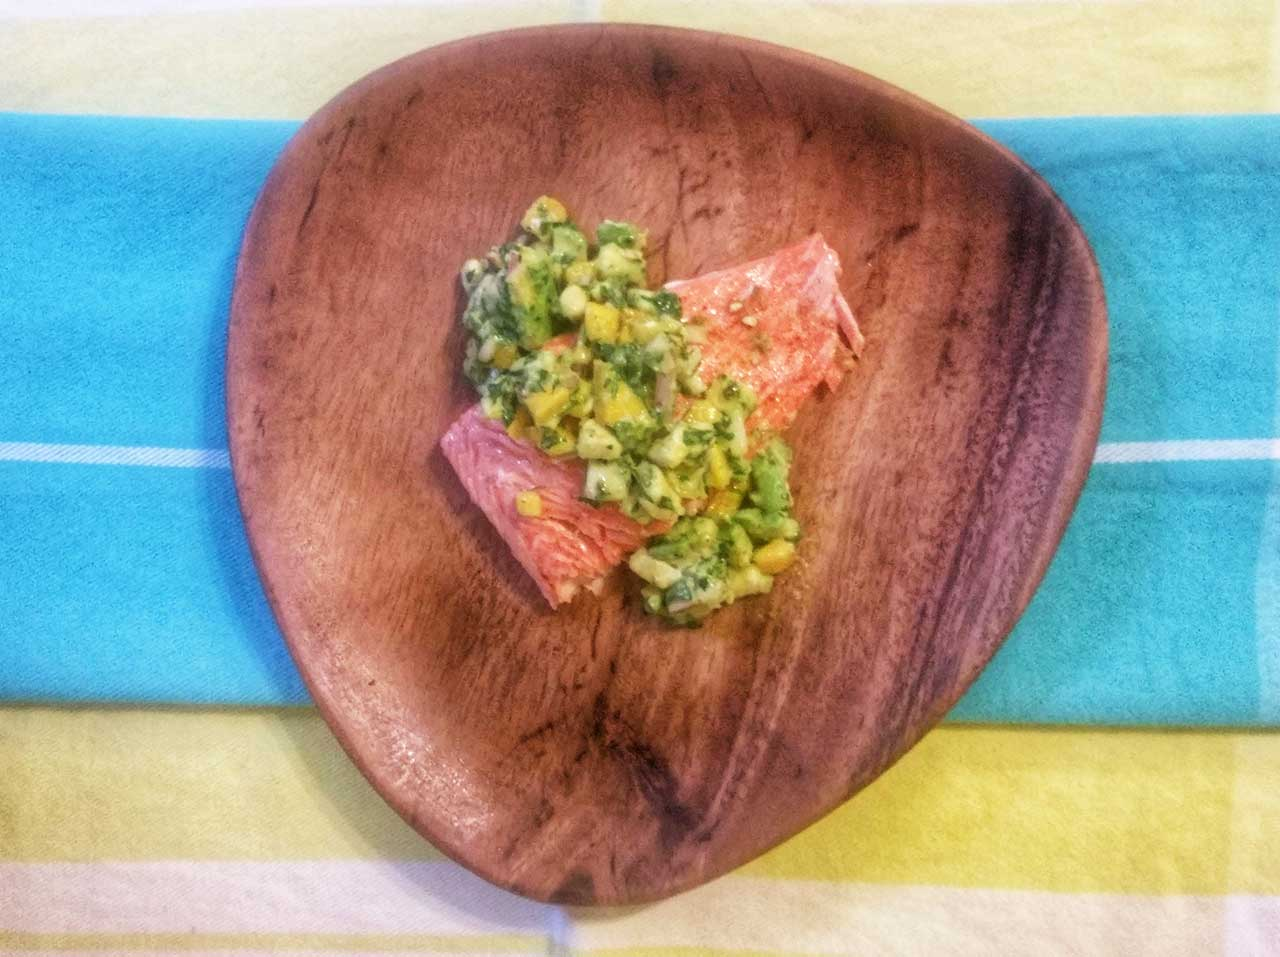 Finding healthy fats…an important part of eating well